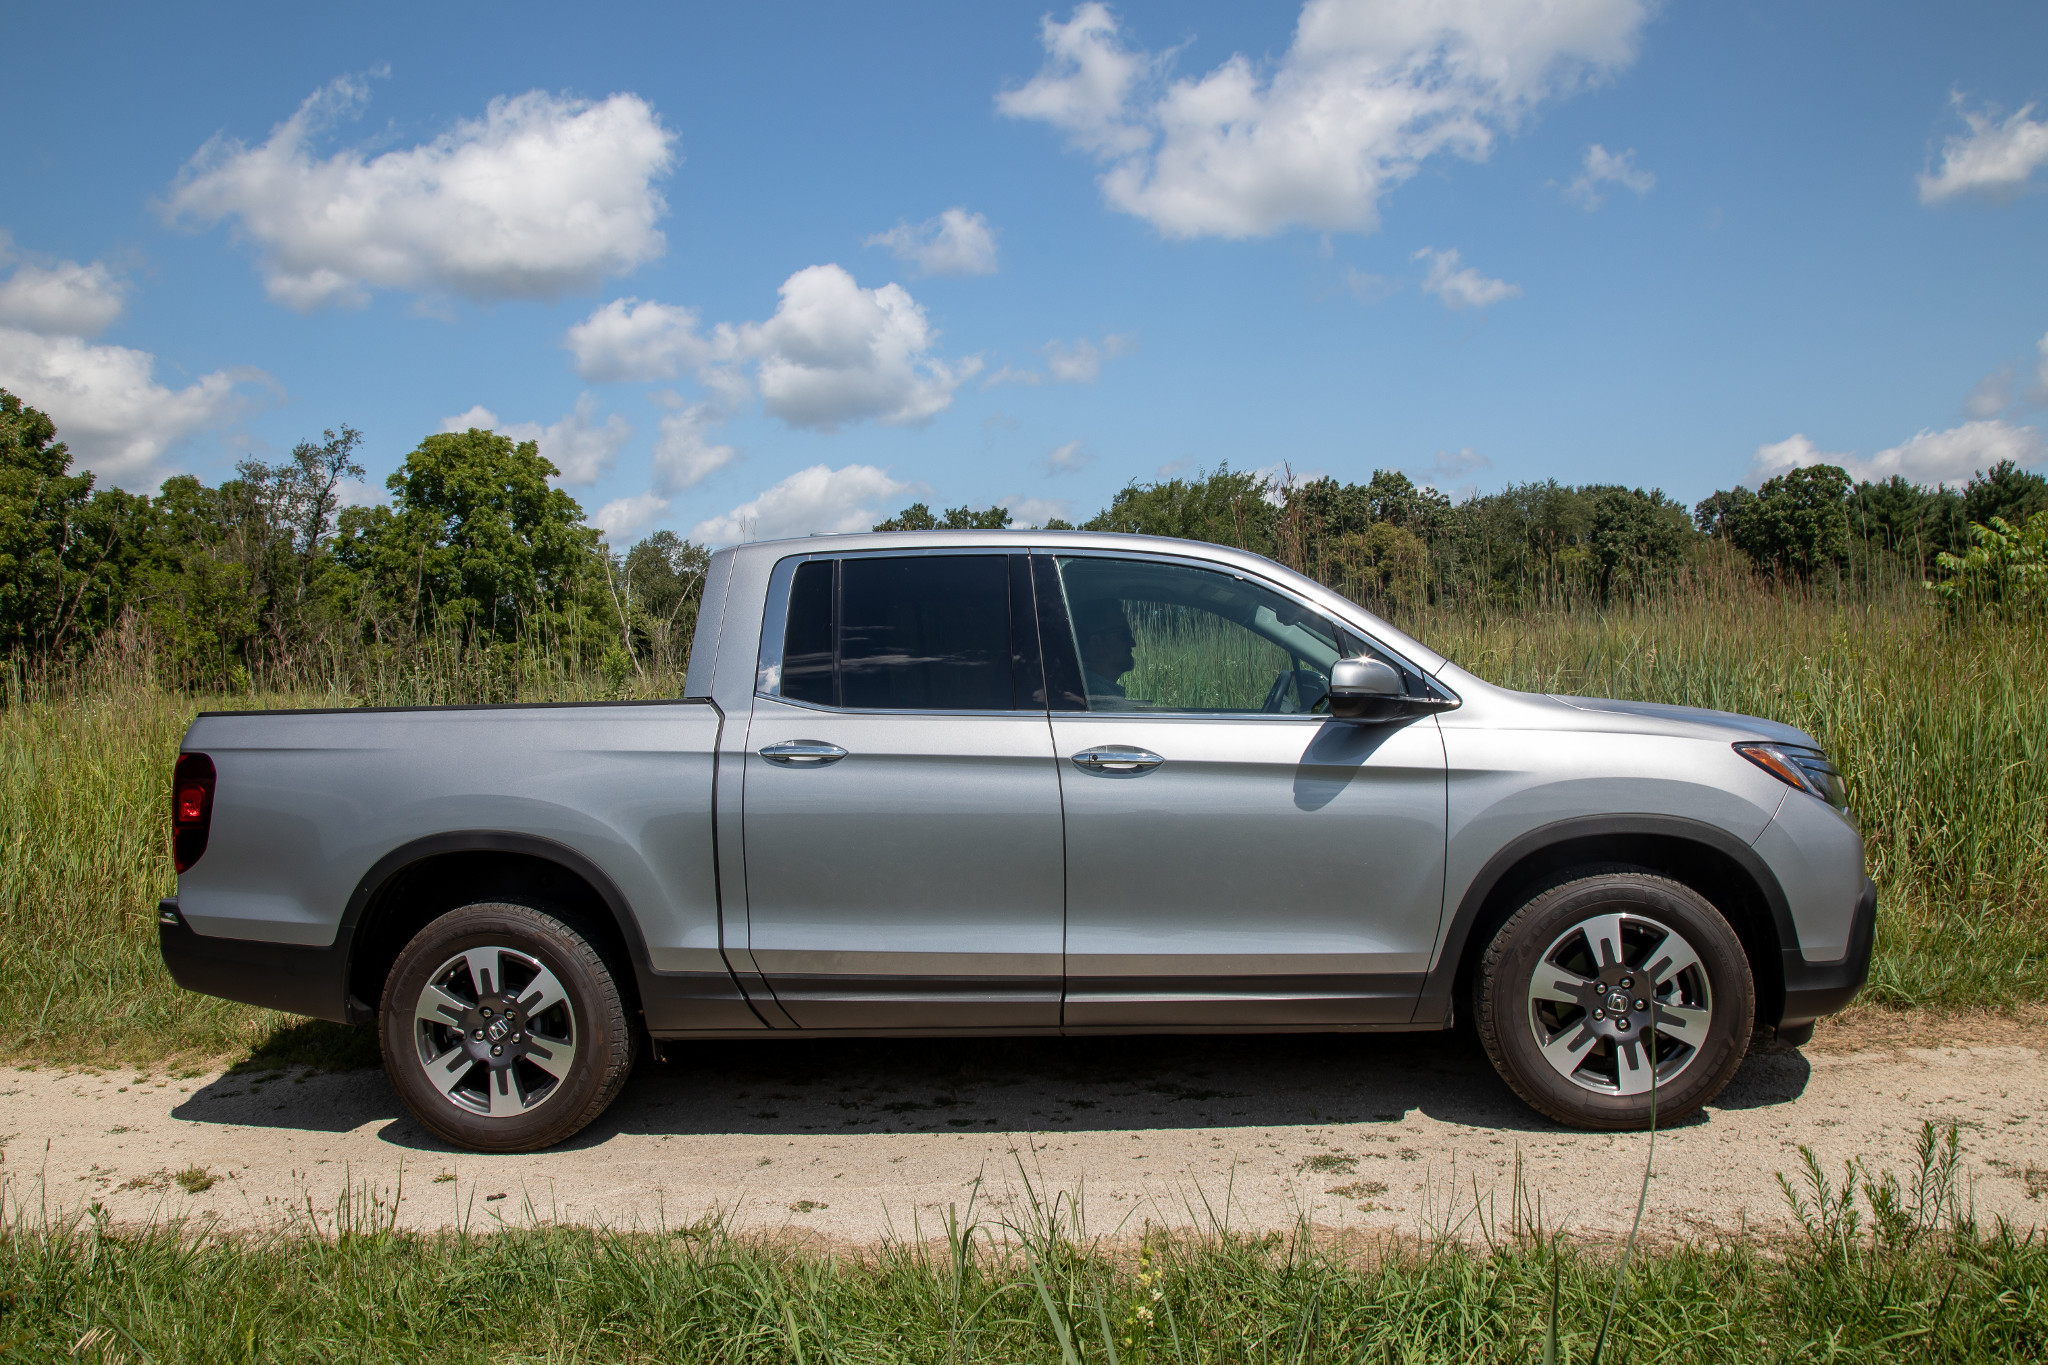 2020 Honda Ridgeline Concept and Review